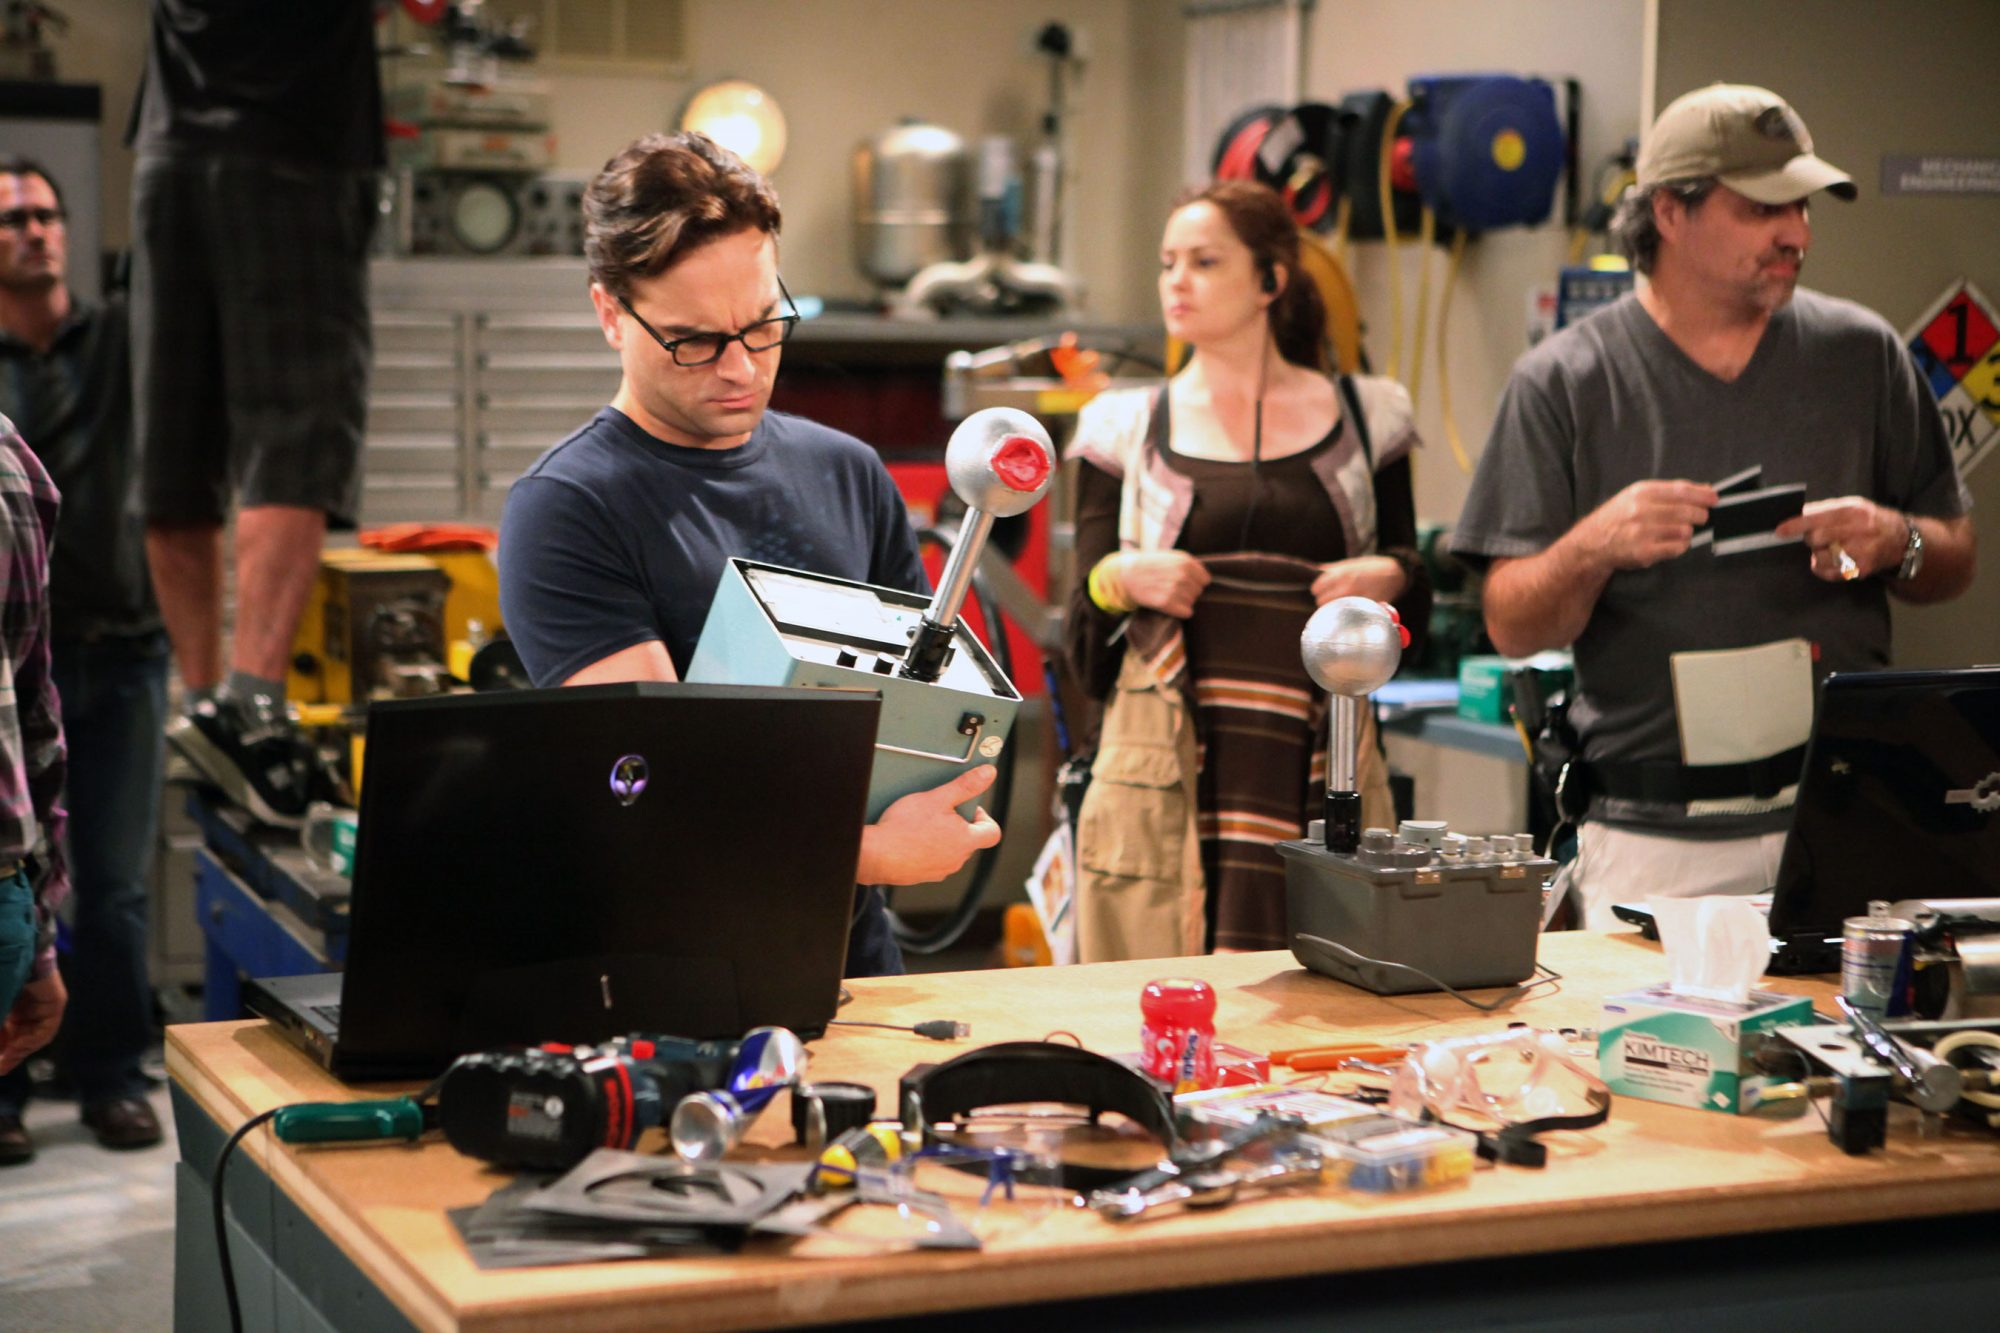 The Big Bang TheoryBTSCR: CBS